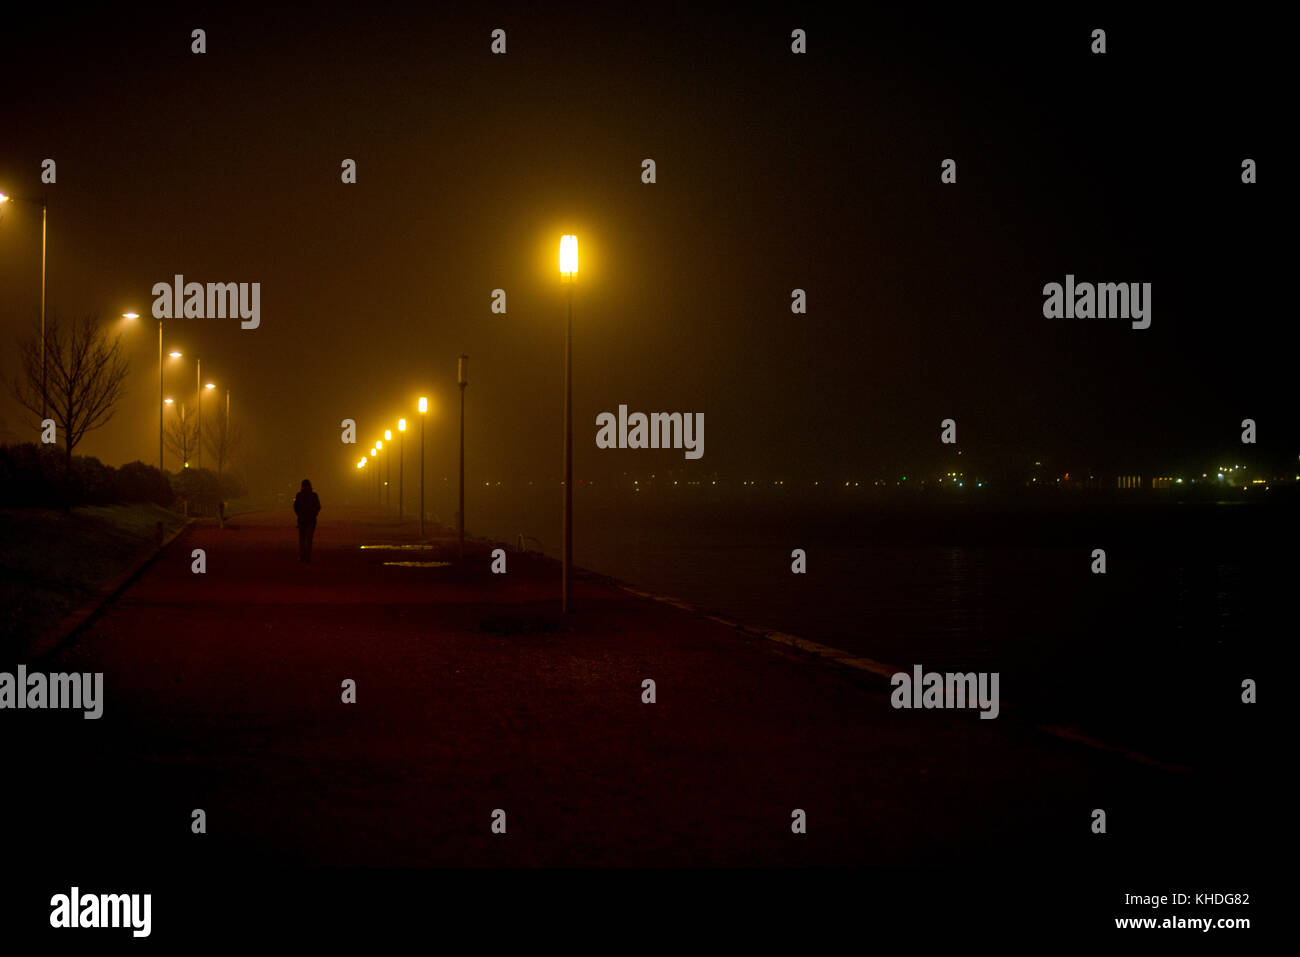 Person walking along deserted waterfront at night Stock Photo